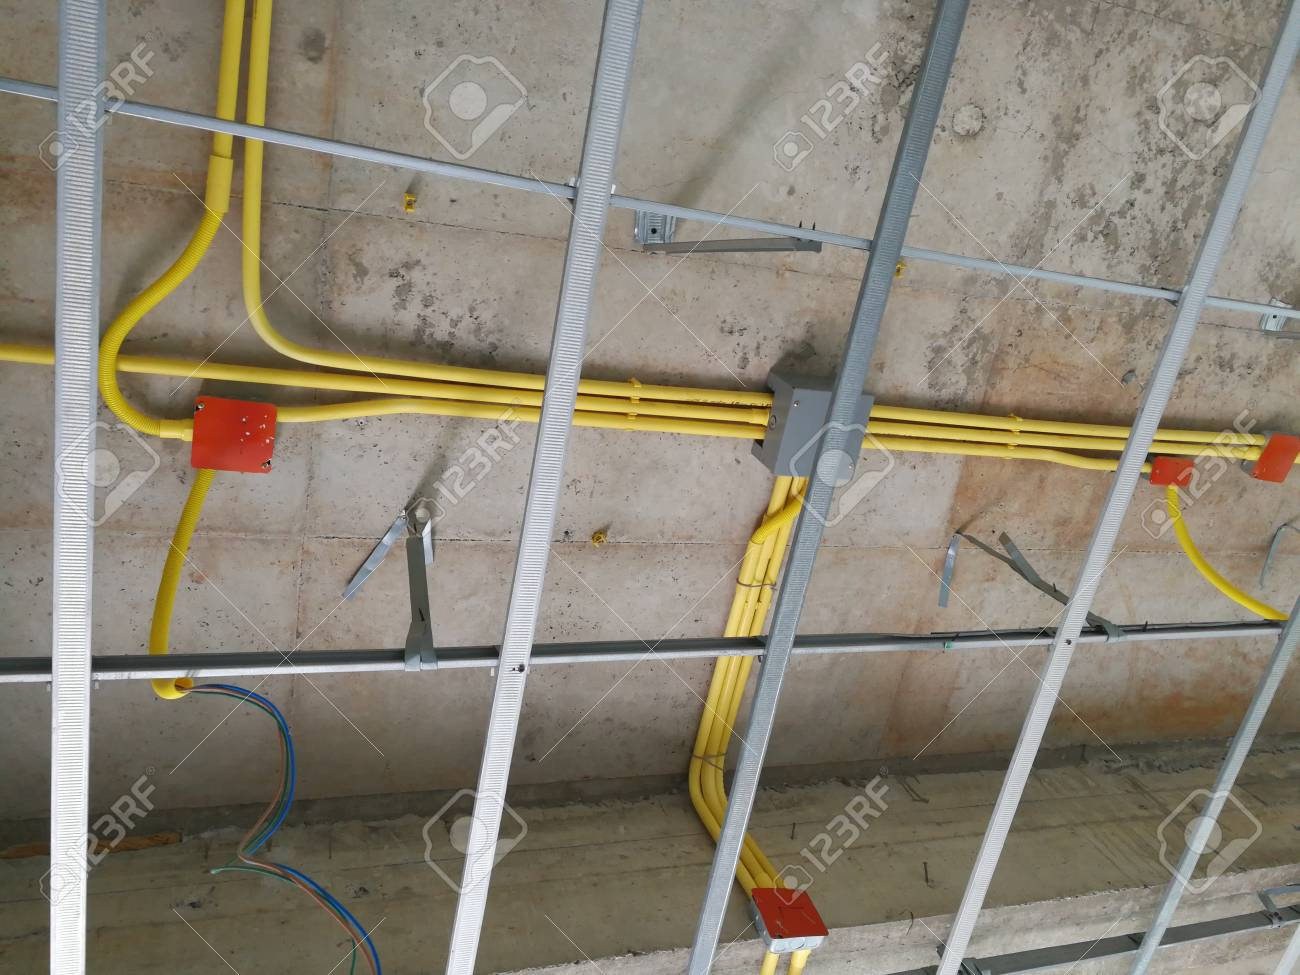 Ceiling under construction and home wiring duct Stock Photo - 84610653